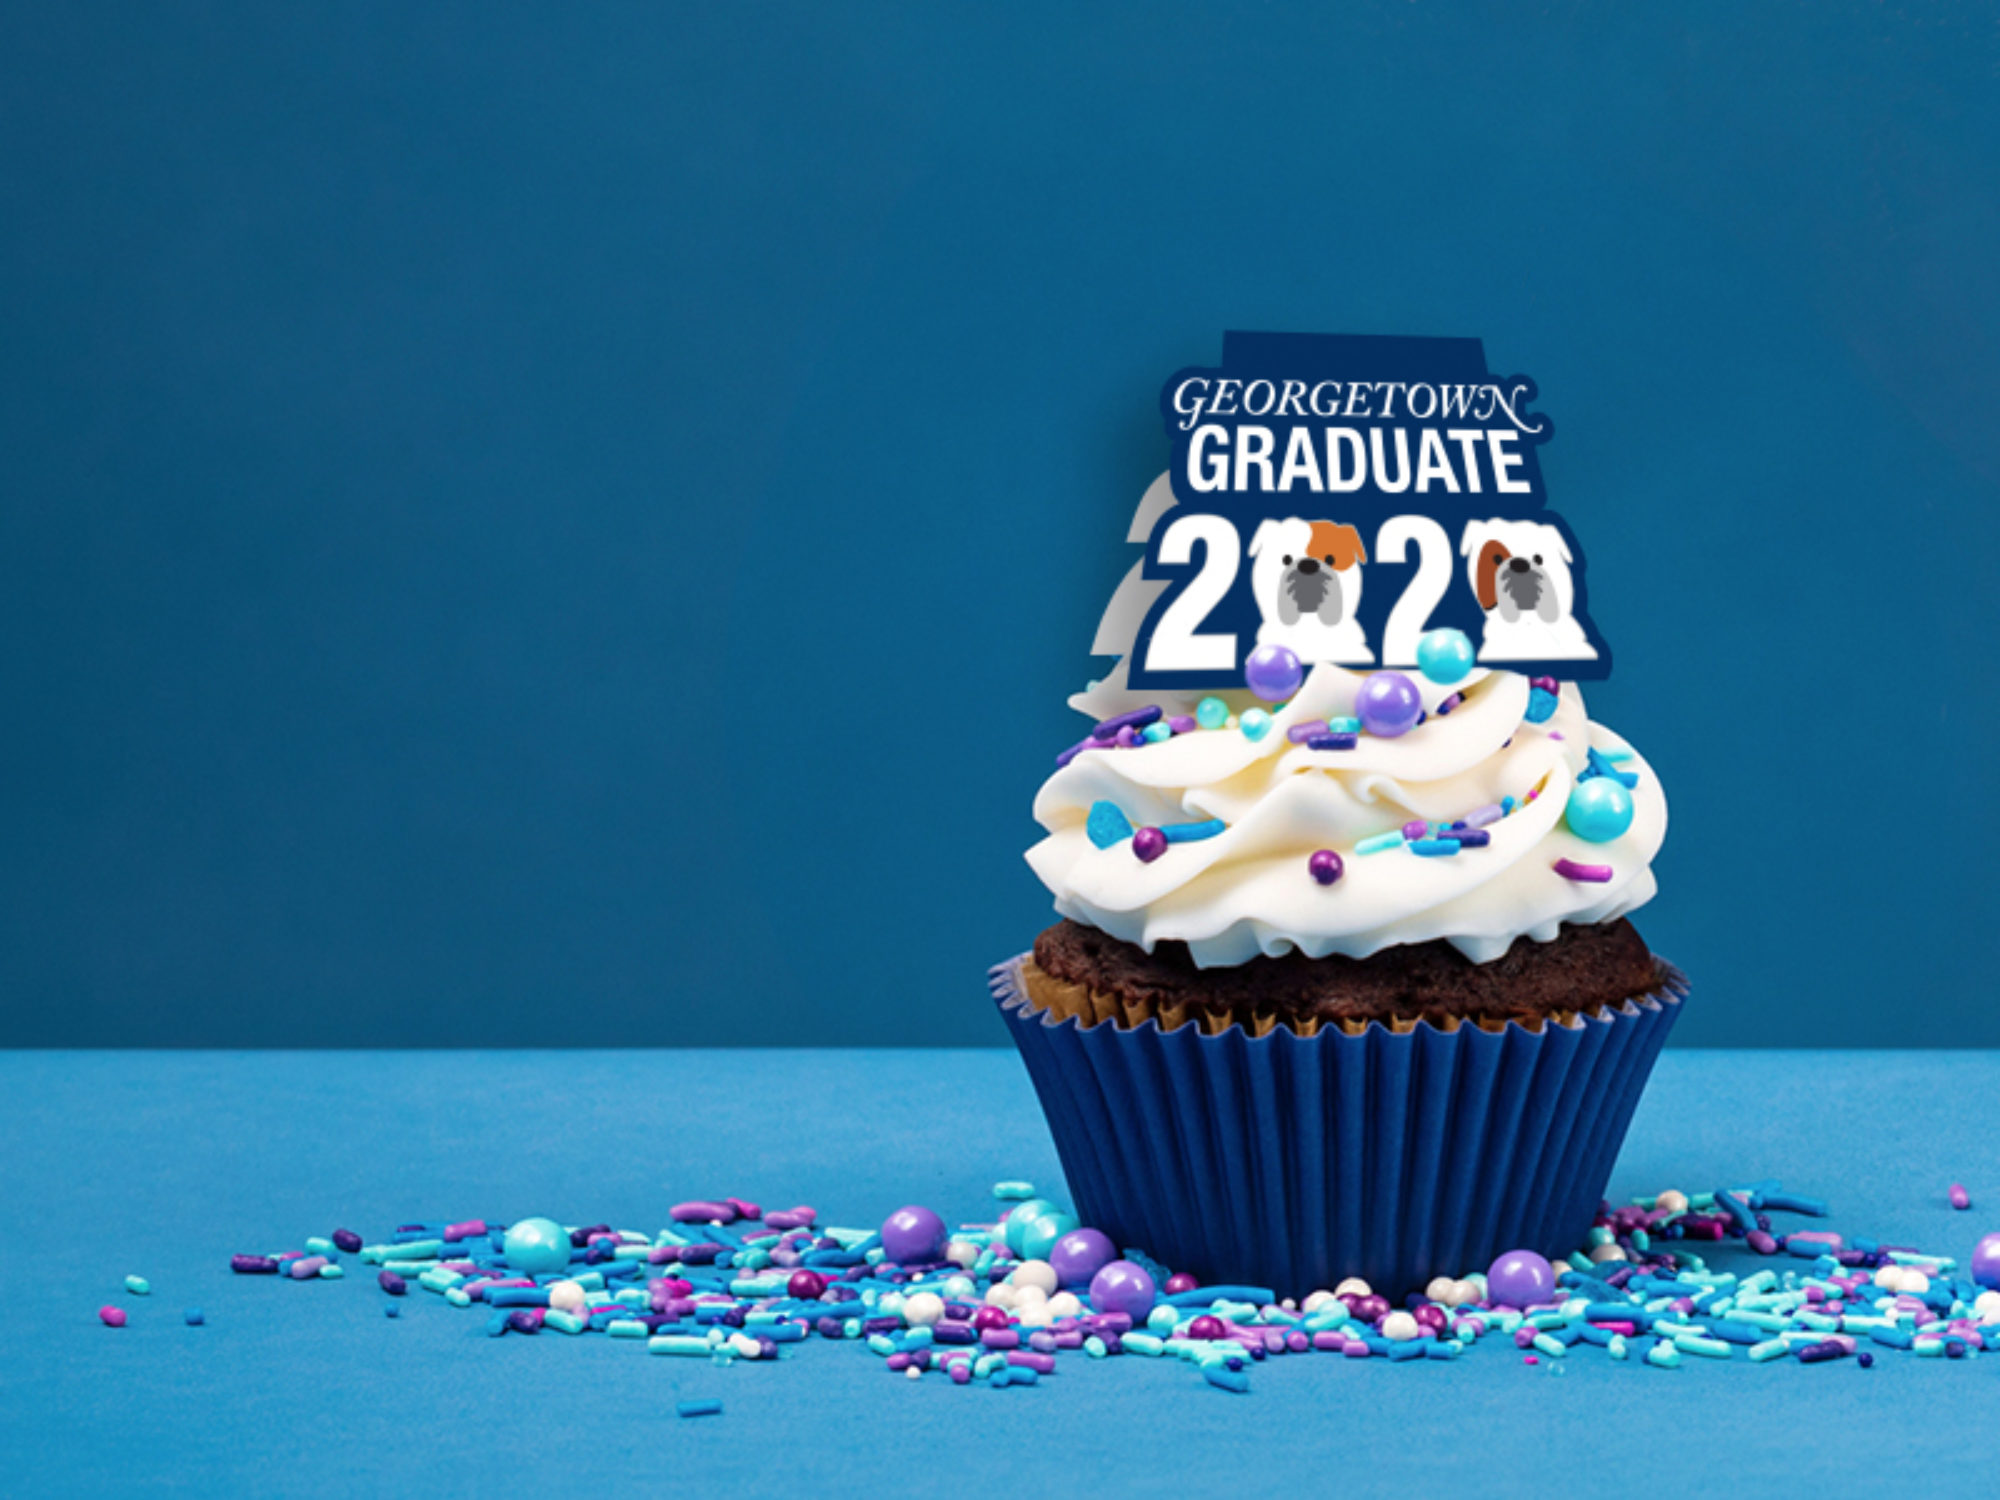 A blue cupcake with a topper that says